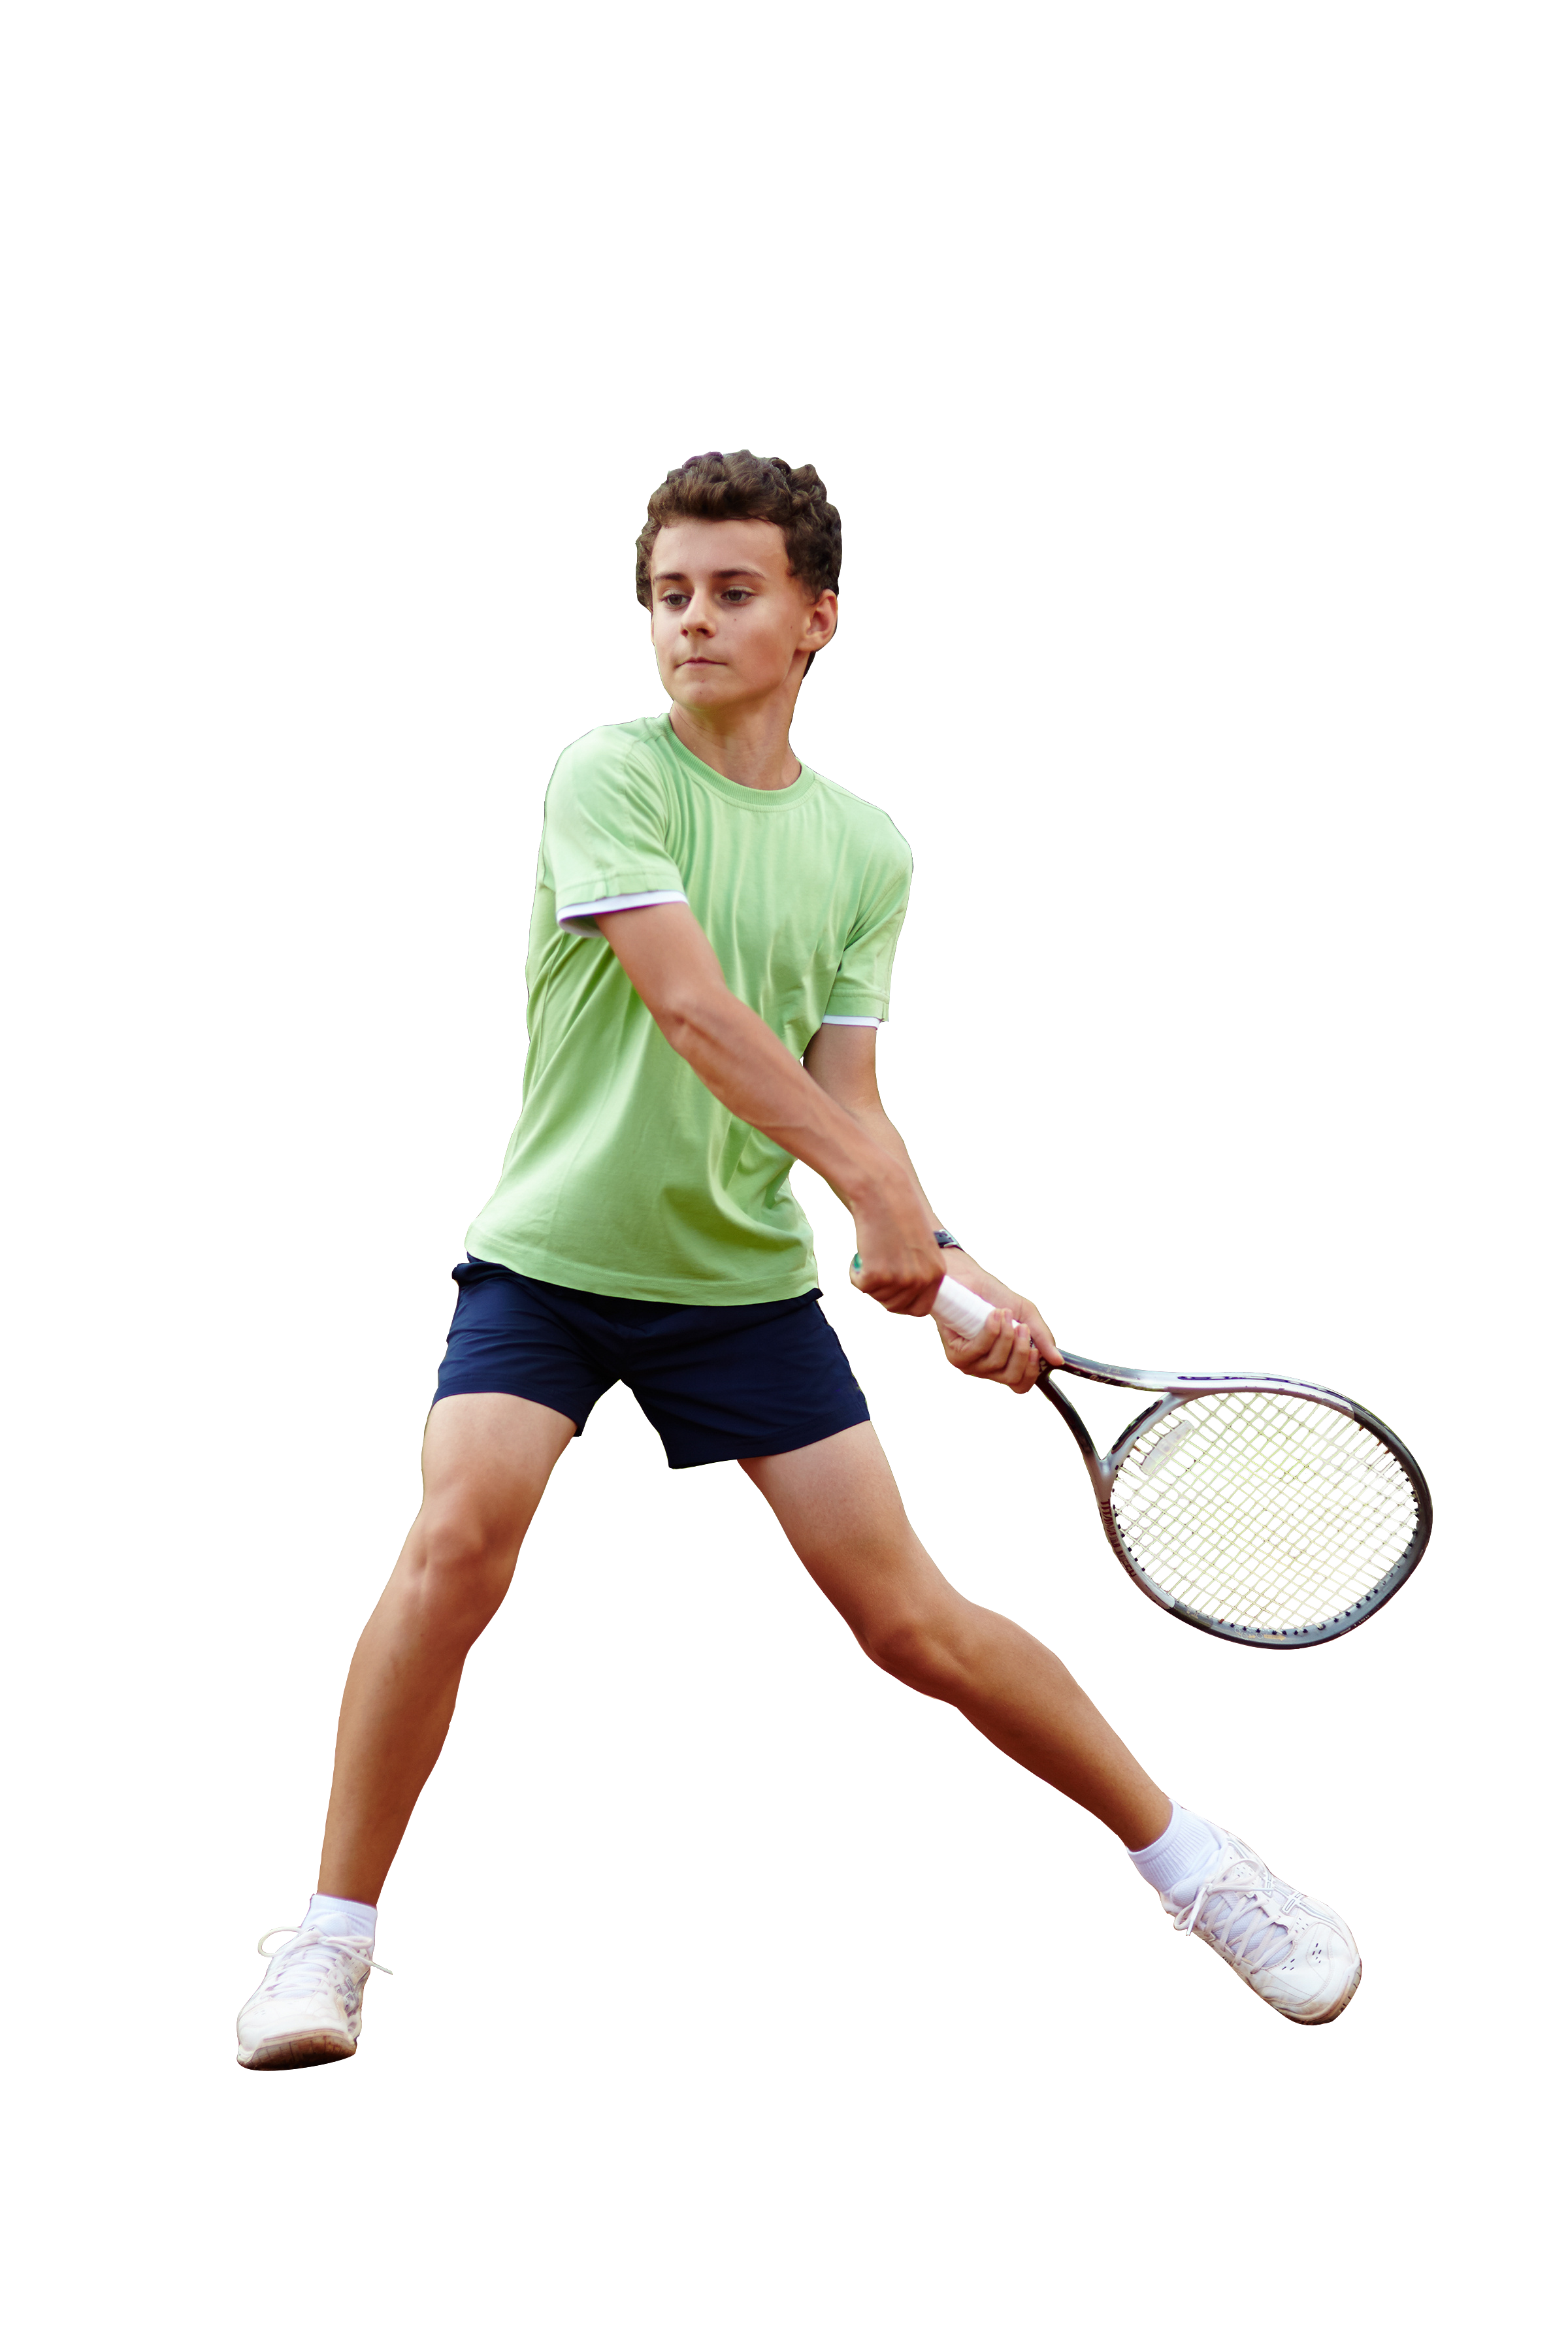 tennis player png image purepng transparent #26718